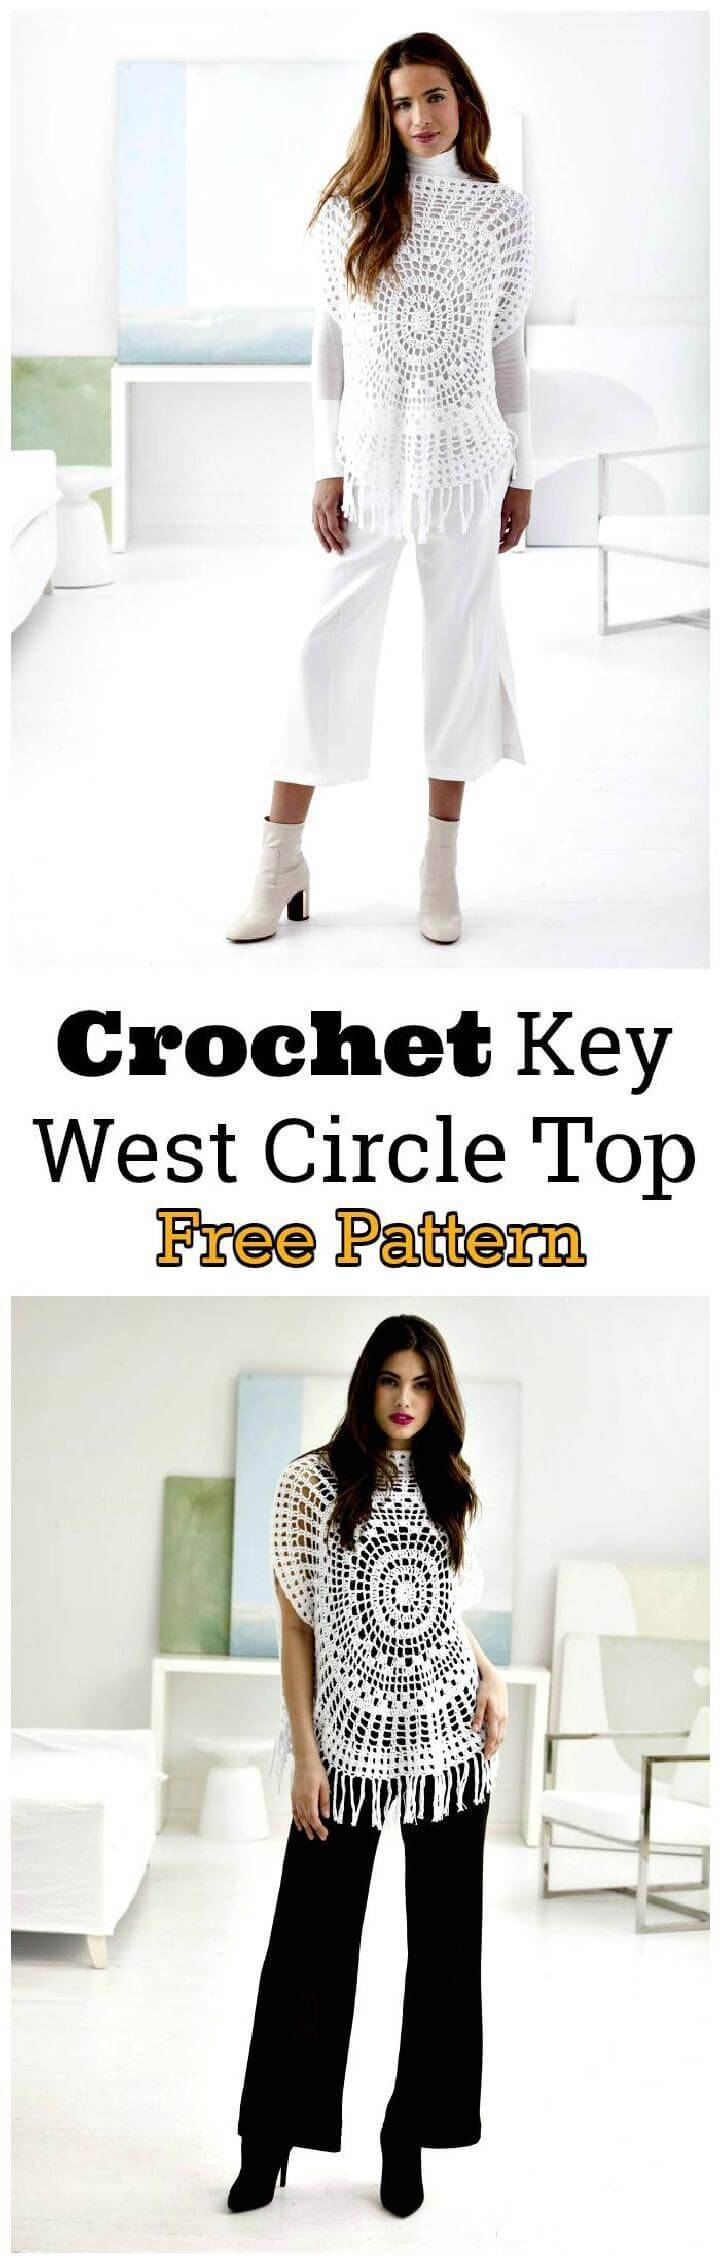 Crochet Key West Circle Top